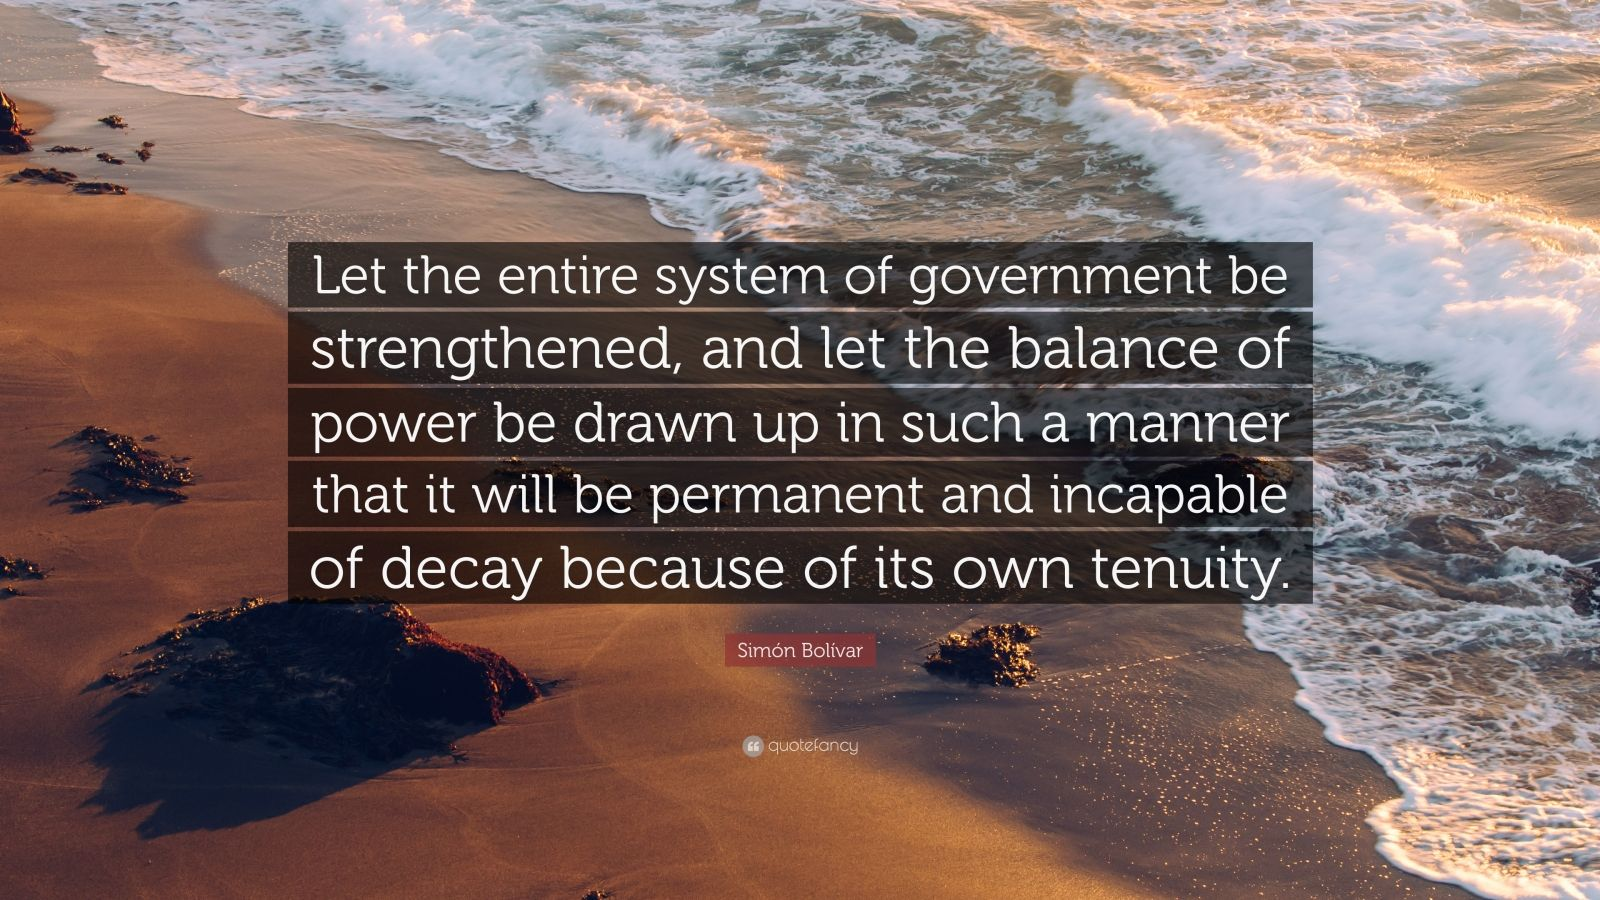 """Simón Bolívar Quote: """"Let the entire system of government be strengthened, and let the balance of power be drawn up in such a manner that it will be permanent and incapable of decay because of its own tenuity."""""""